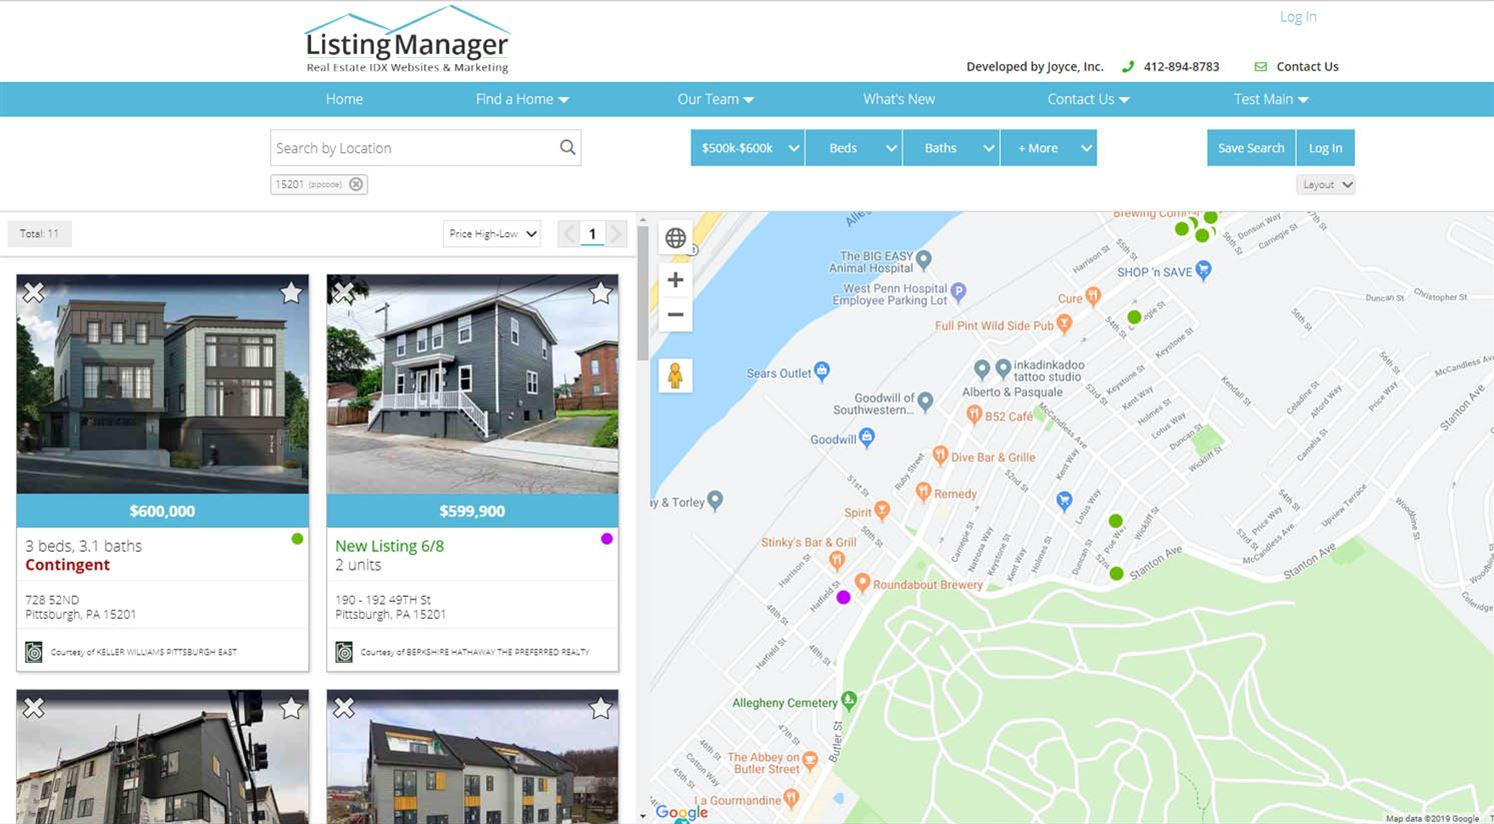 Listing Manager search page